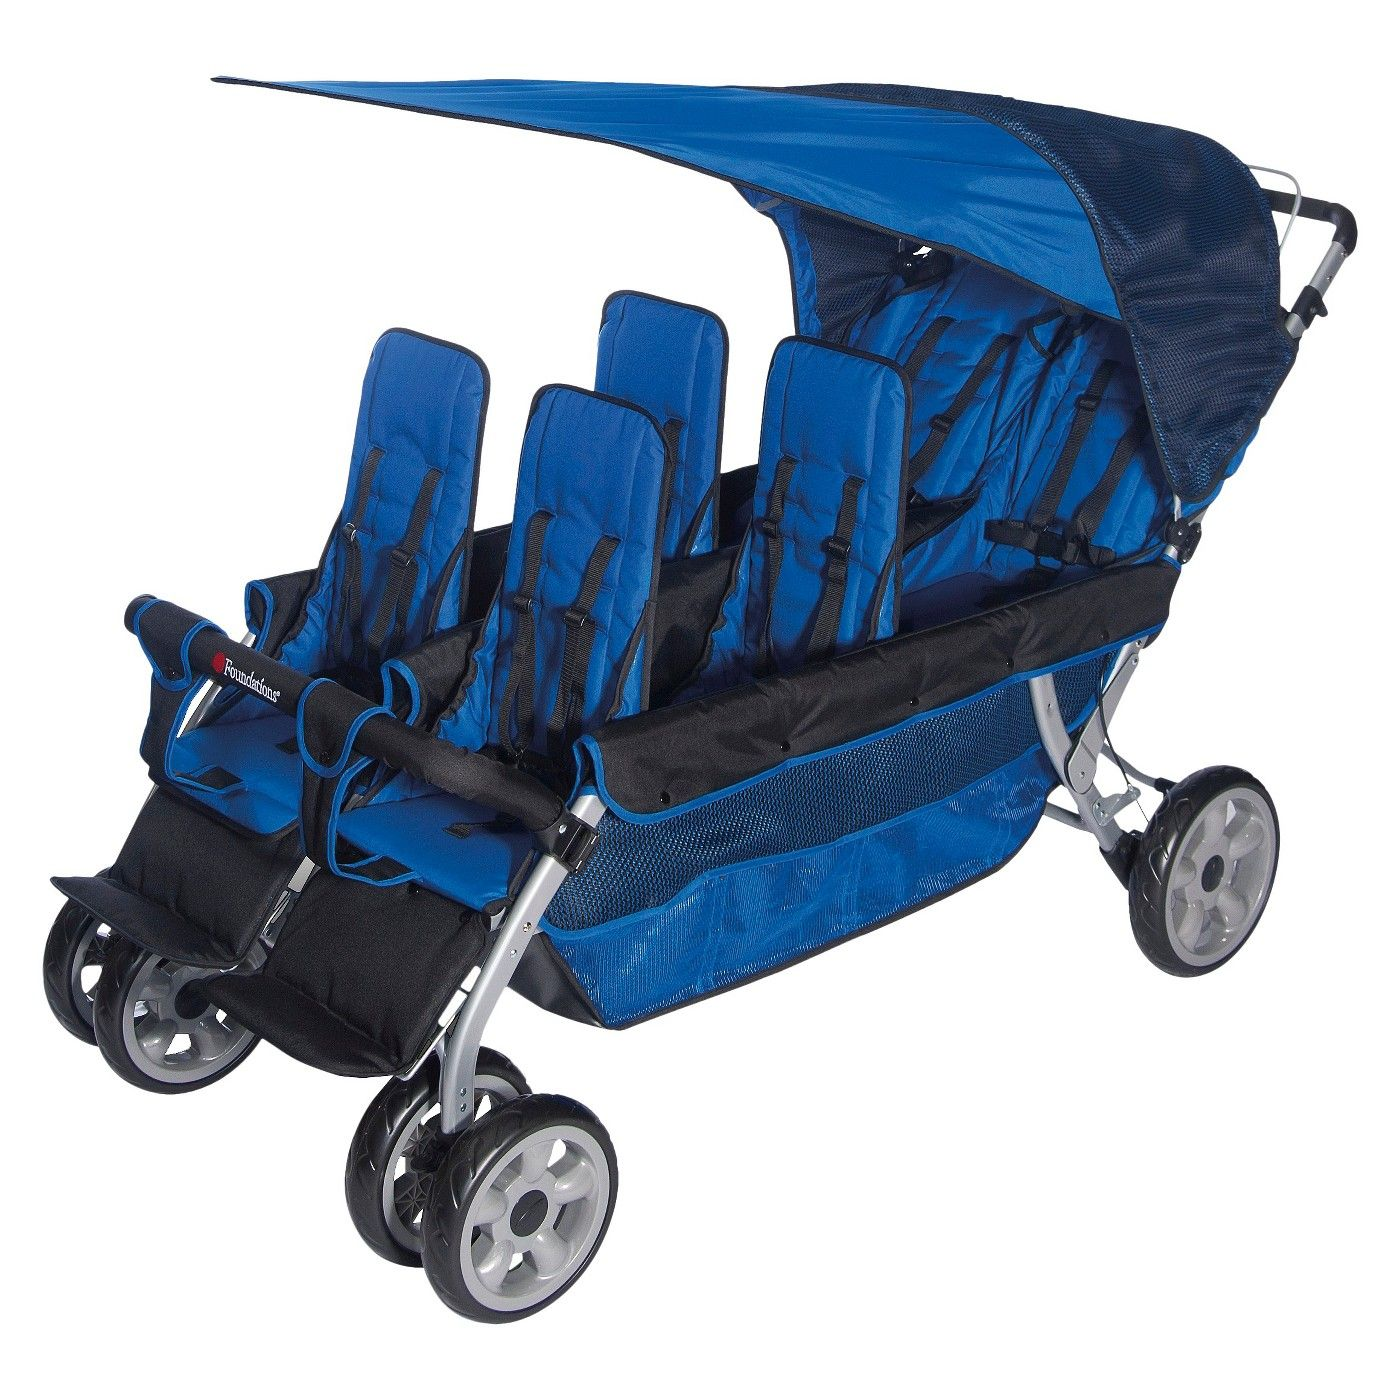 Foundations LX6 Six Passenger Stroller Blue Stroller